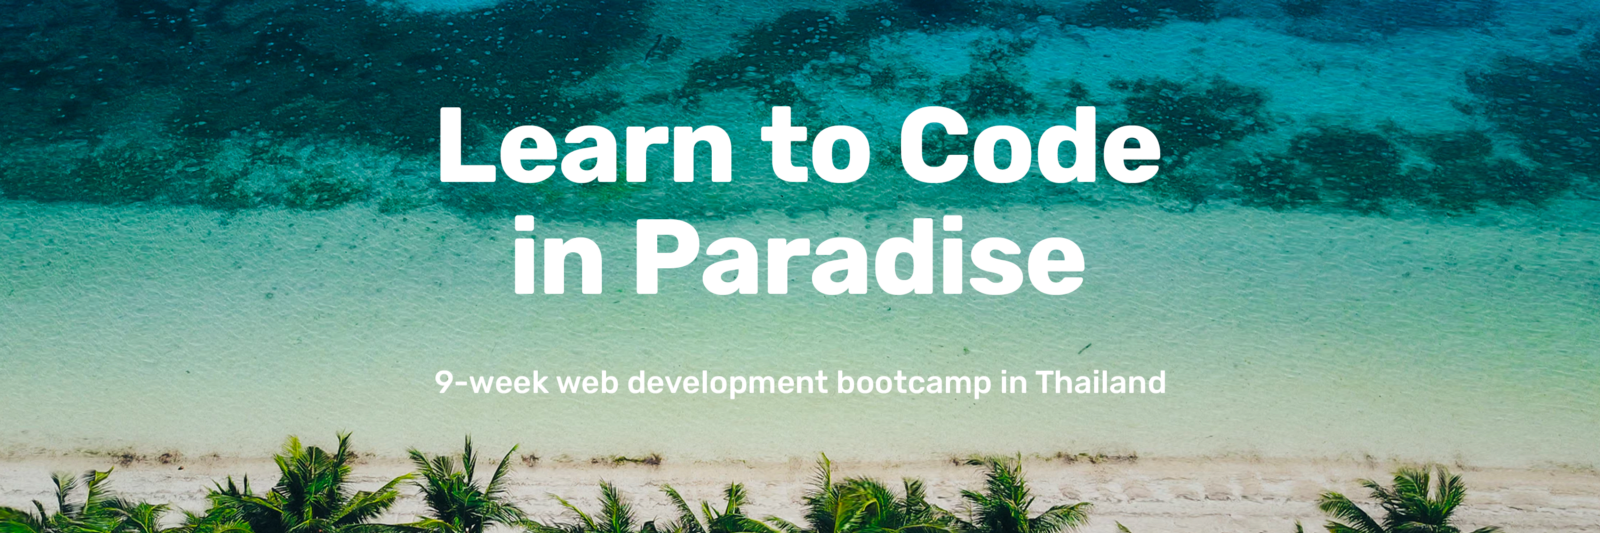 Learn to Code in Paradise